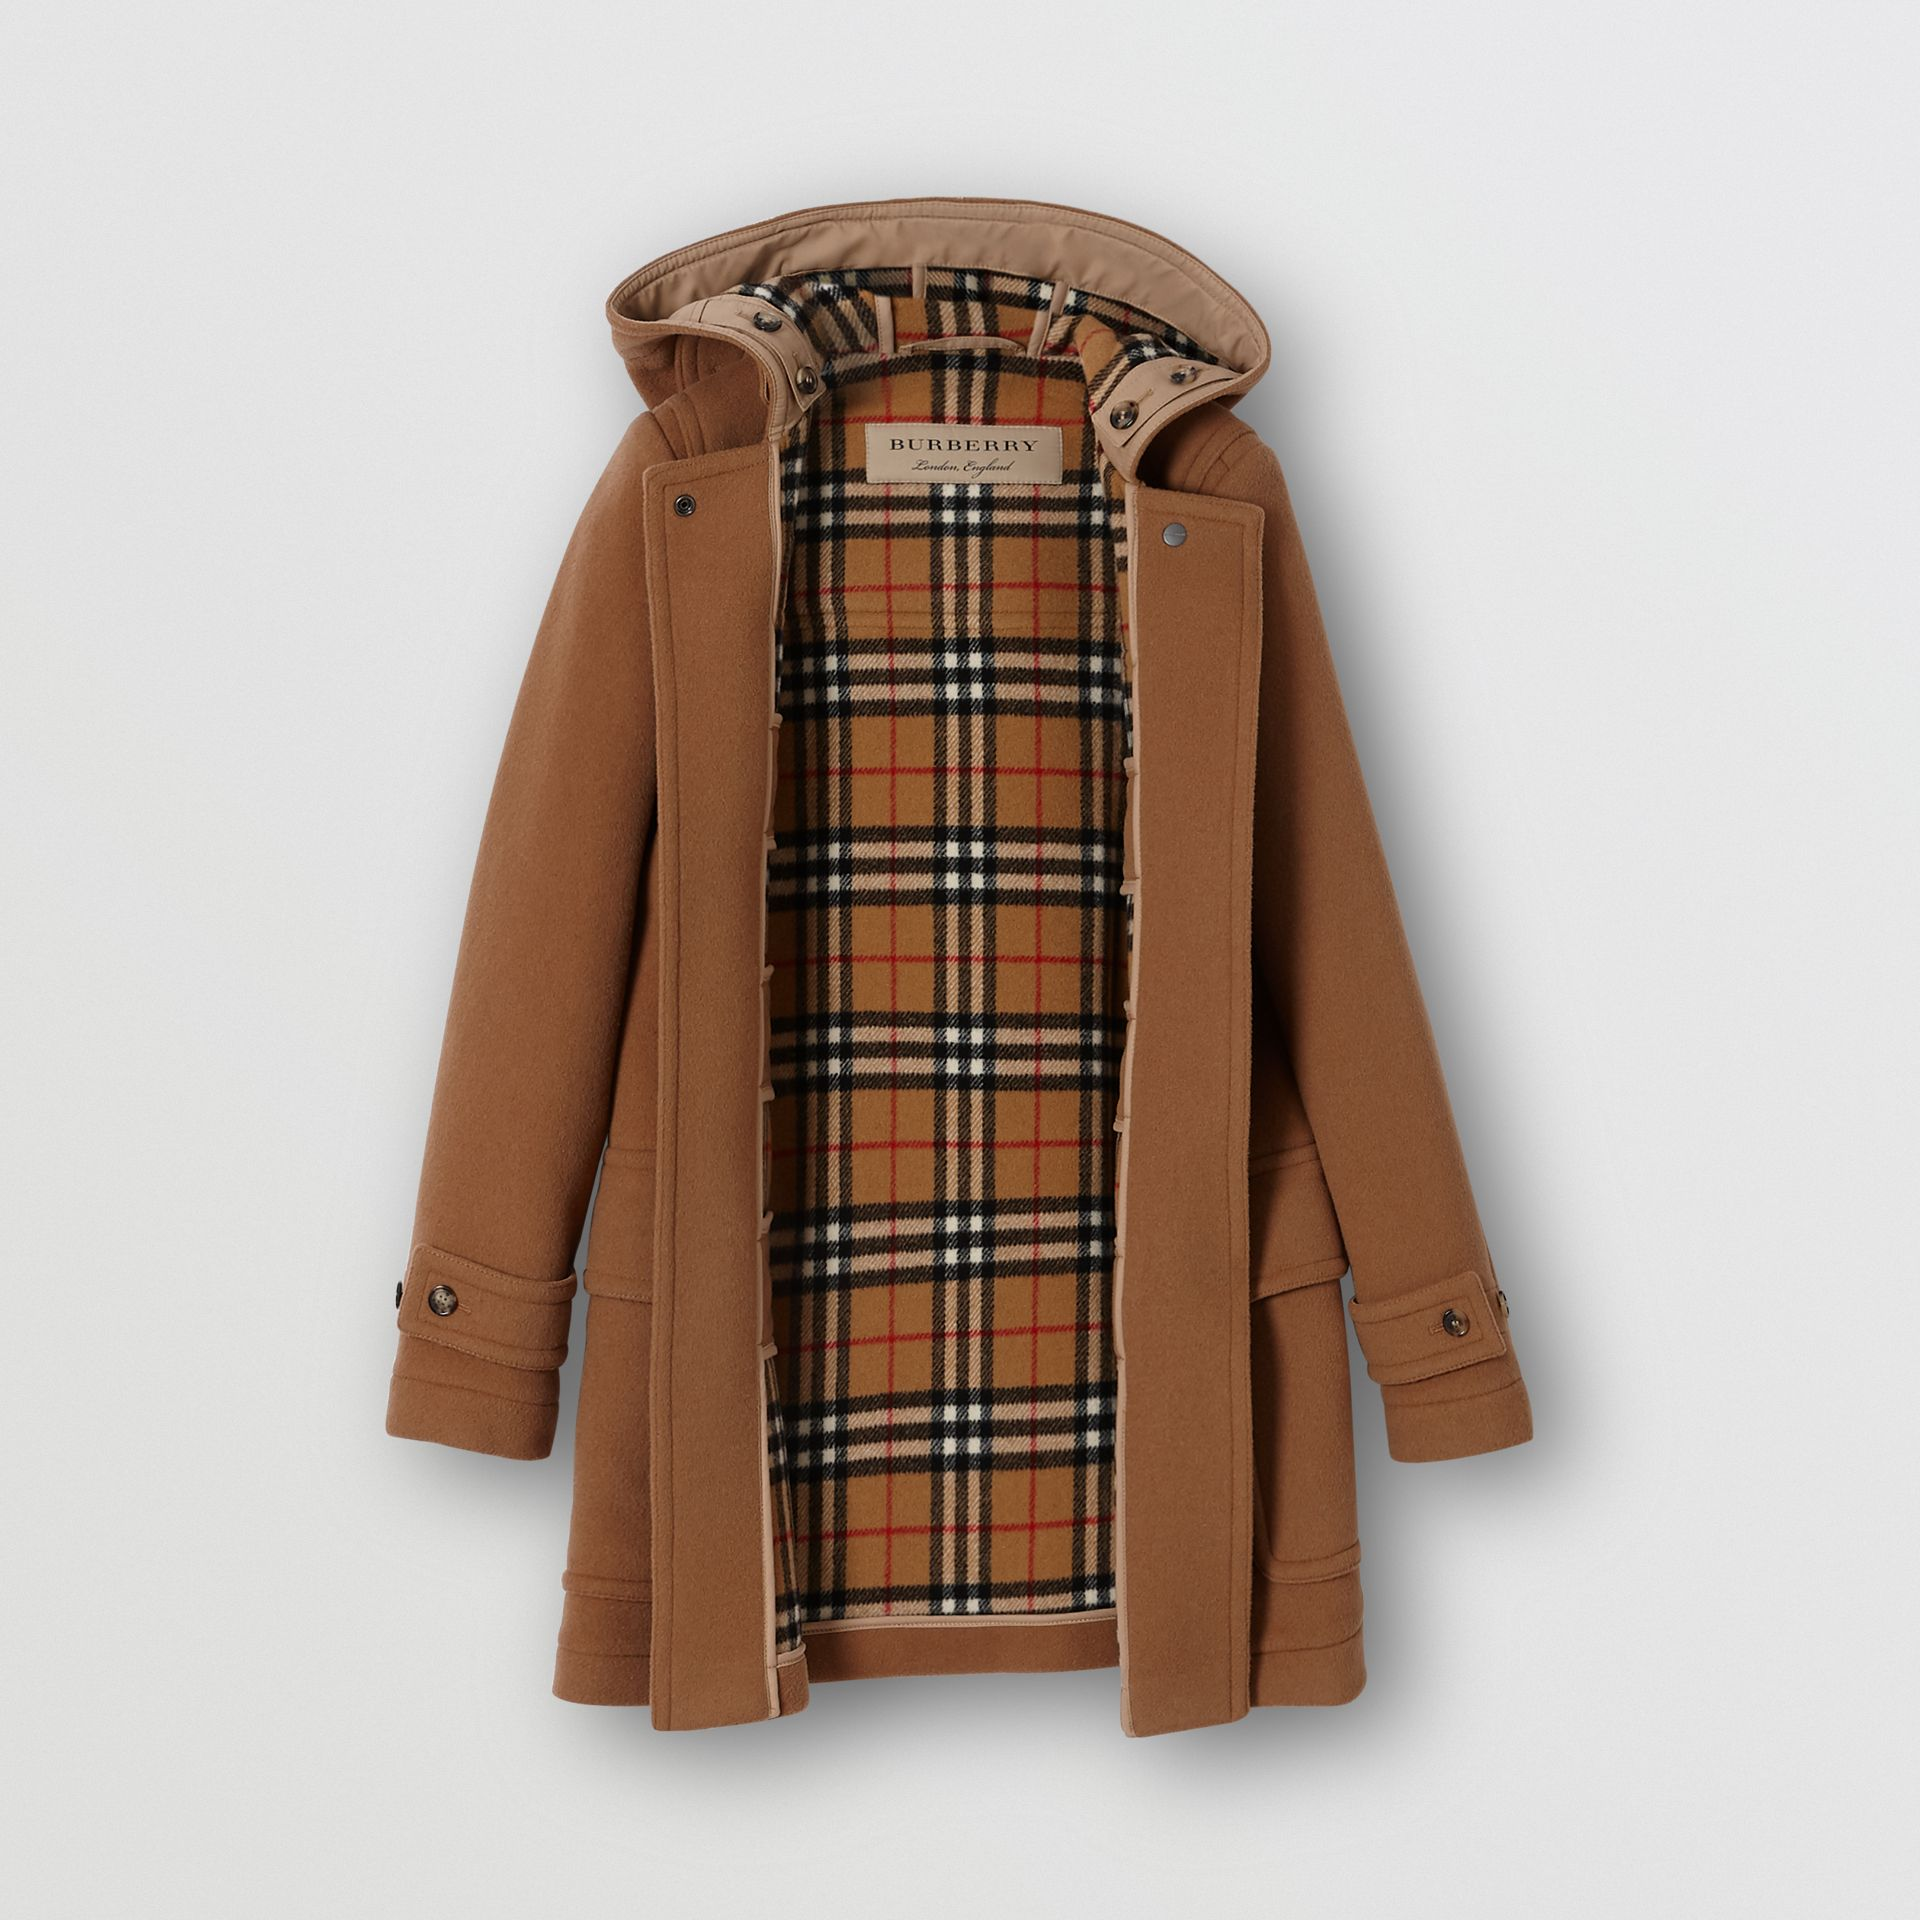 Wool Blend Duffle Coat in Camel - Women | Burberry - gallery image 3